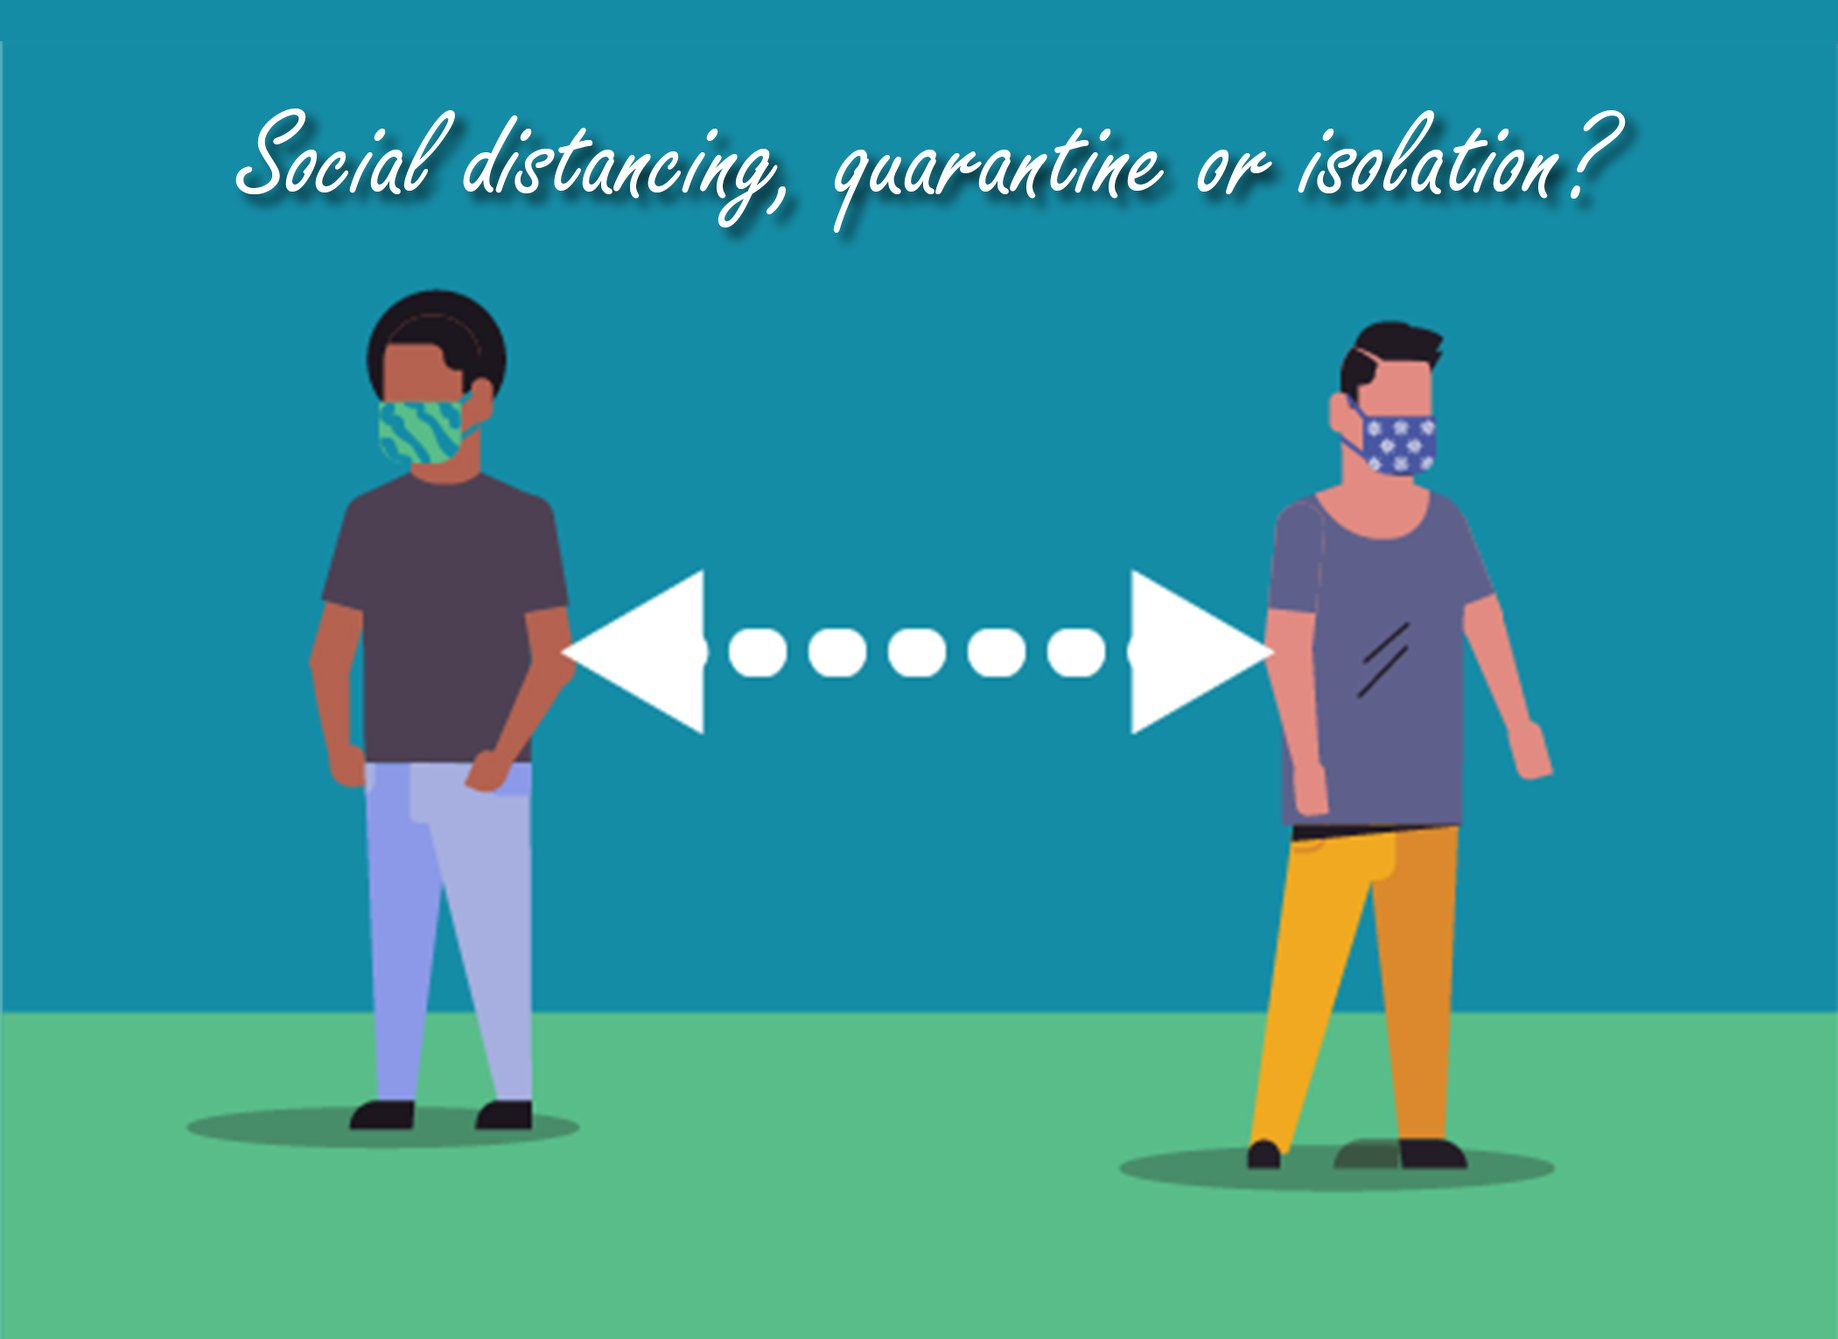 Social Distancing Quarantining Isolation